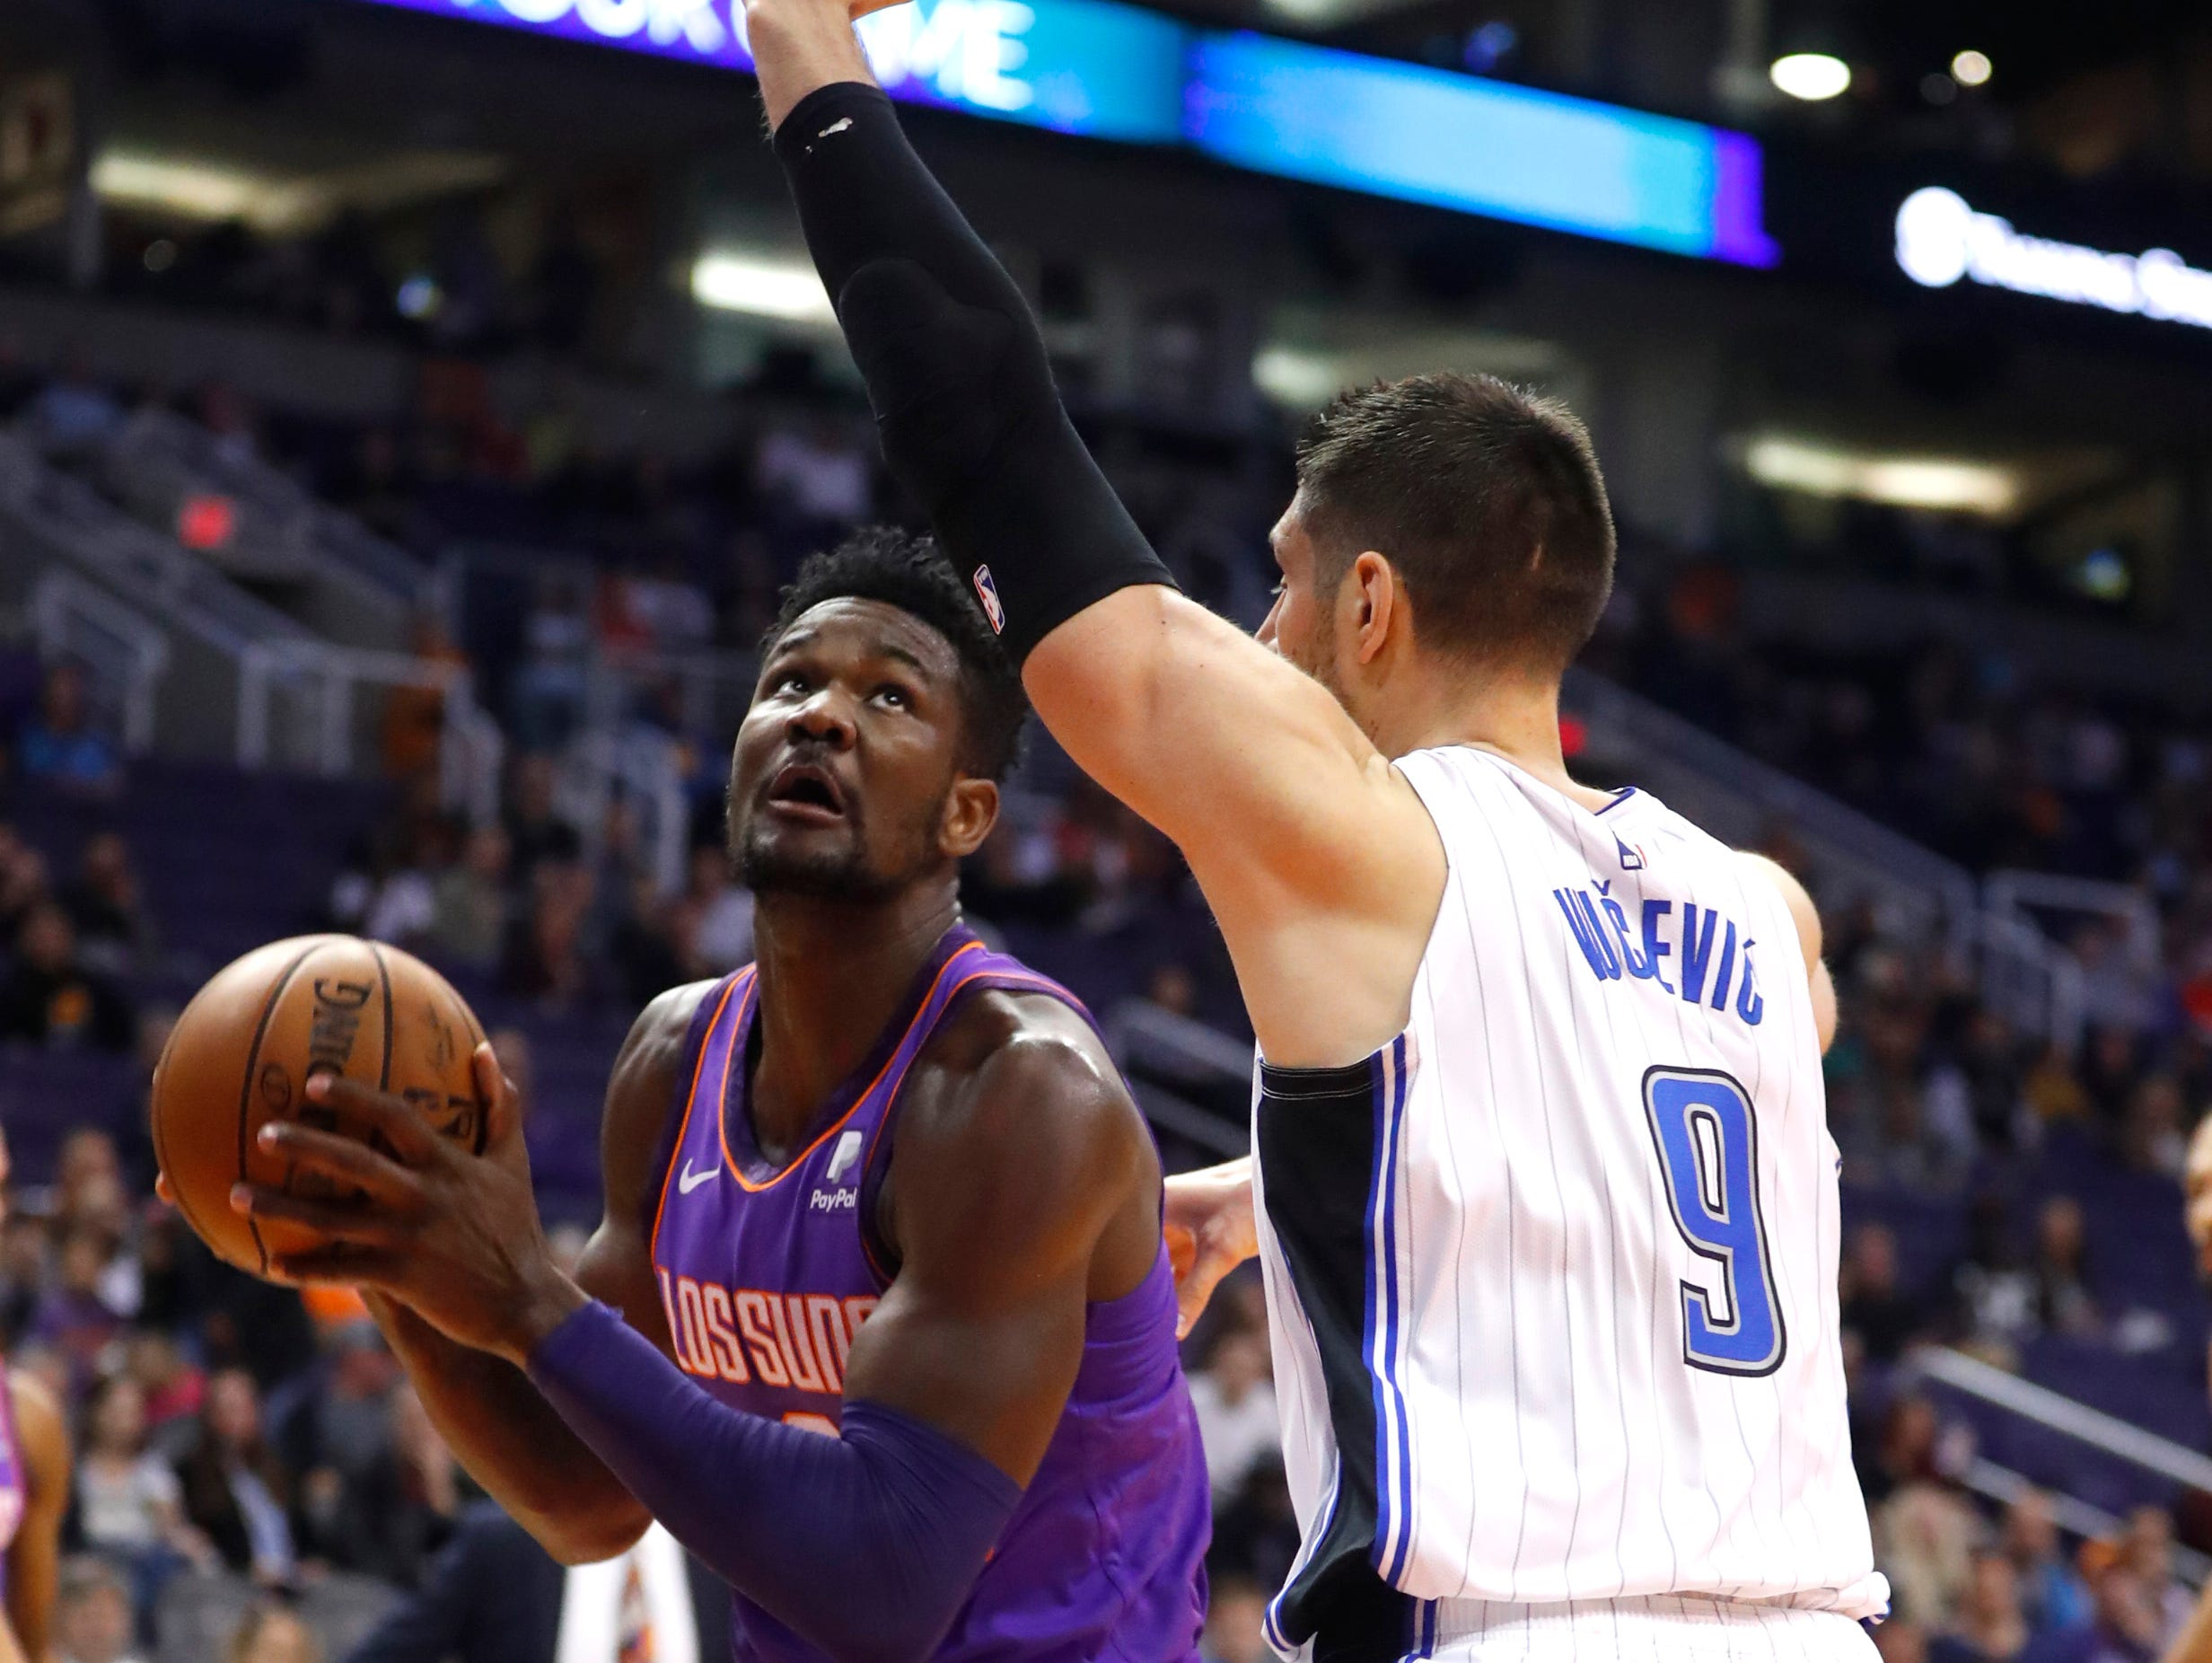 Suns' Deandre Ayton (22) goes up for a shot against Magic's Nikola Vucevic (9) during the first half at Talking Stick Resort Arena in Phoenix, Ariz. on November 30, 2018.